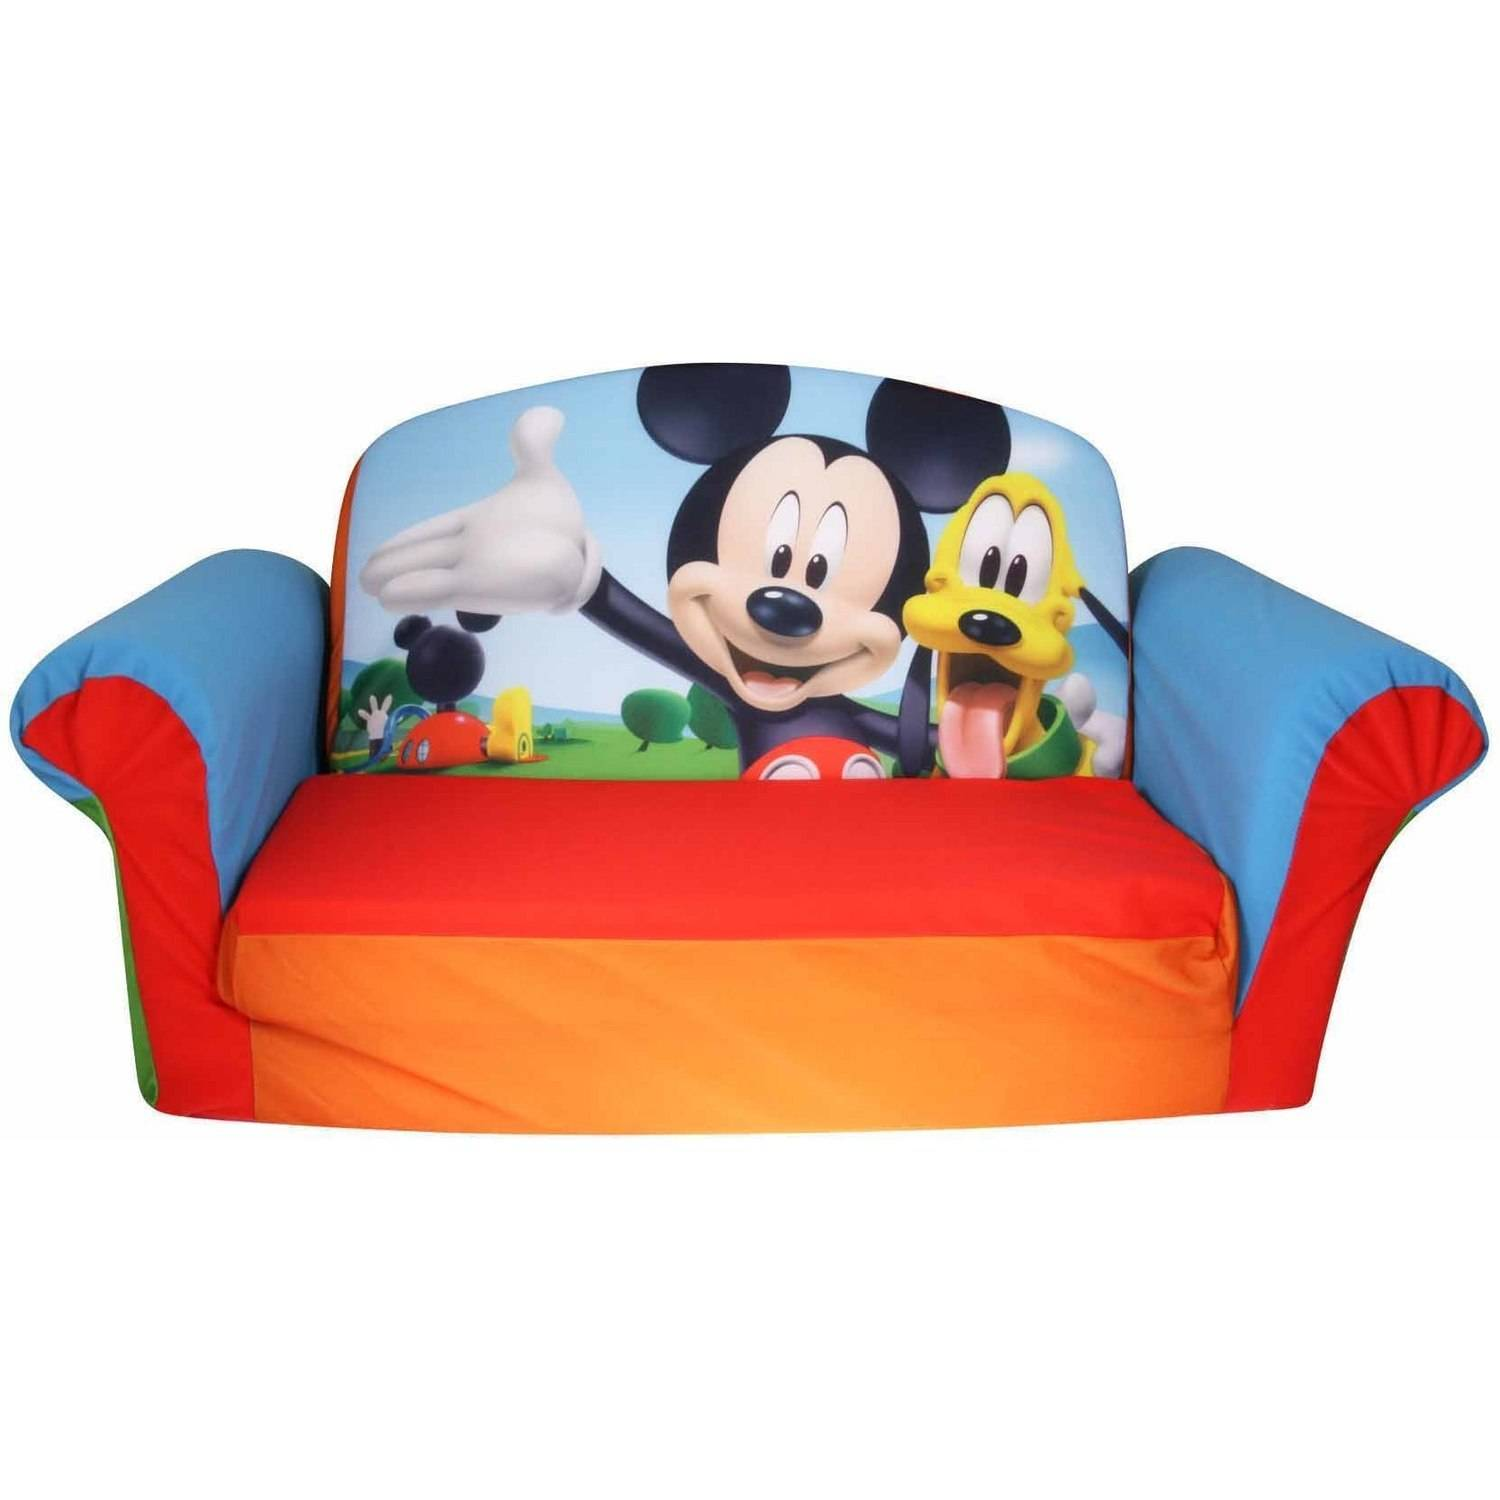 Marshmallow Furniture 2-in-1 Flip Open Sofa, Mickey Mouse Club House